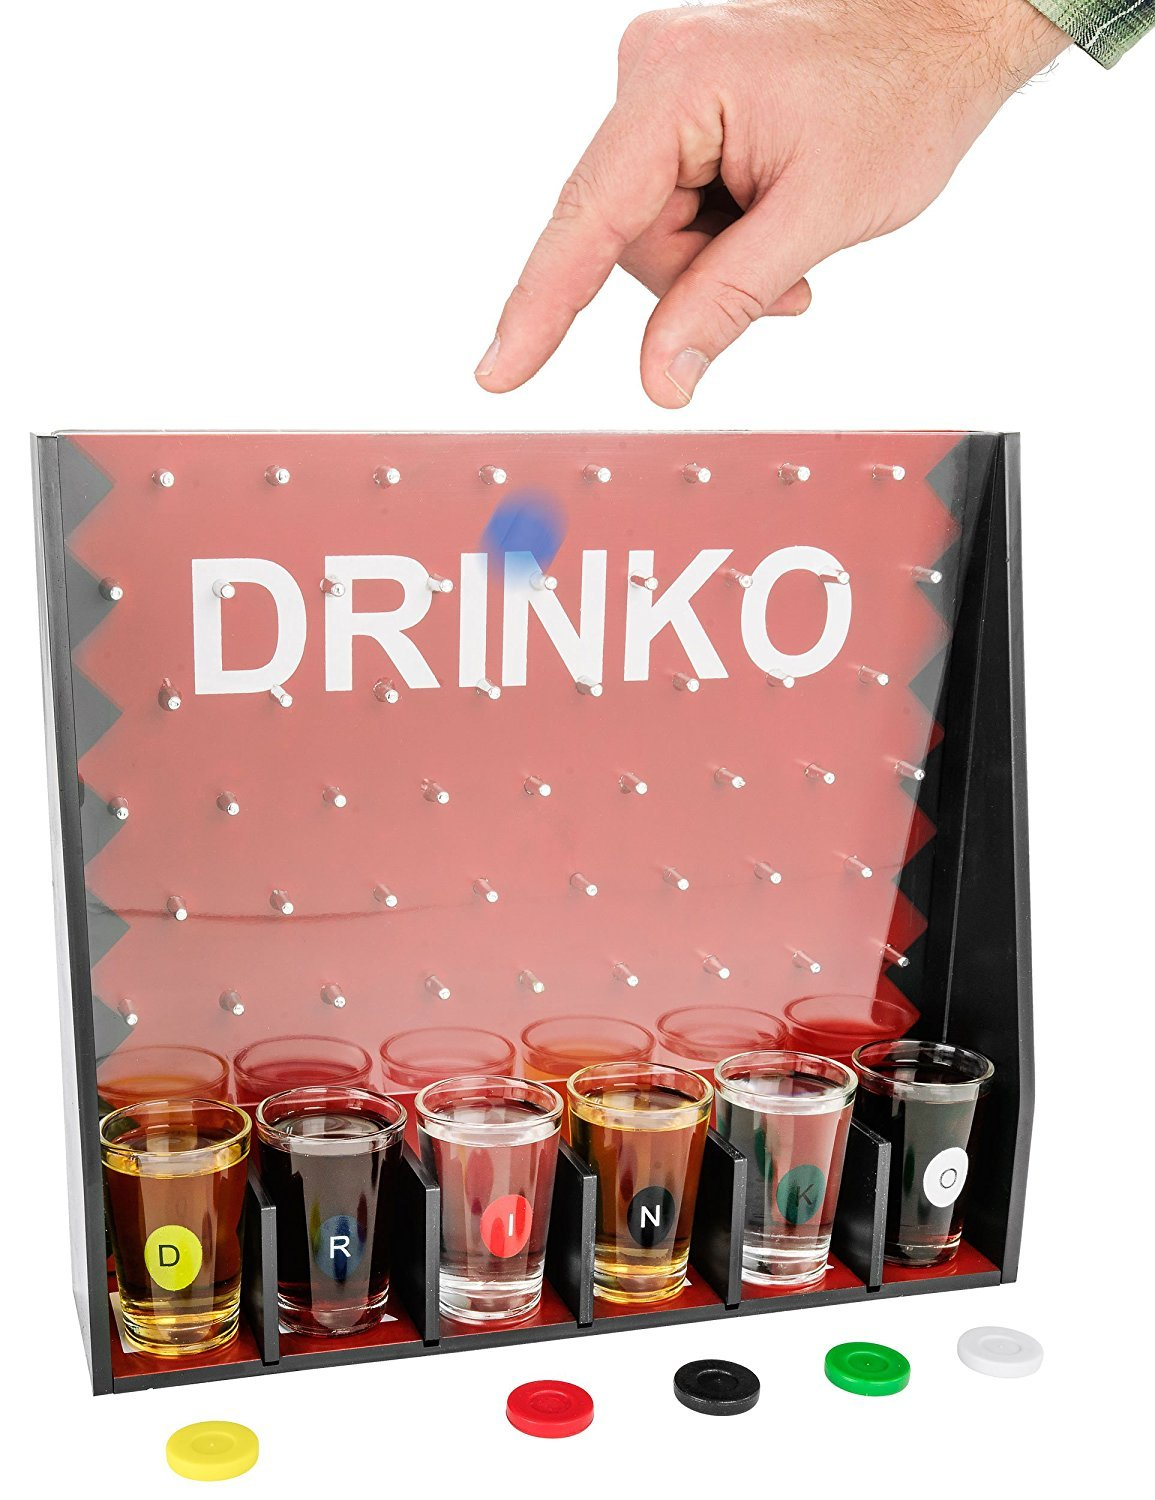 GIFTS INFINITY Drinko Shot Glass Adult Drinking Game Entertaining Party